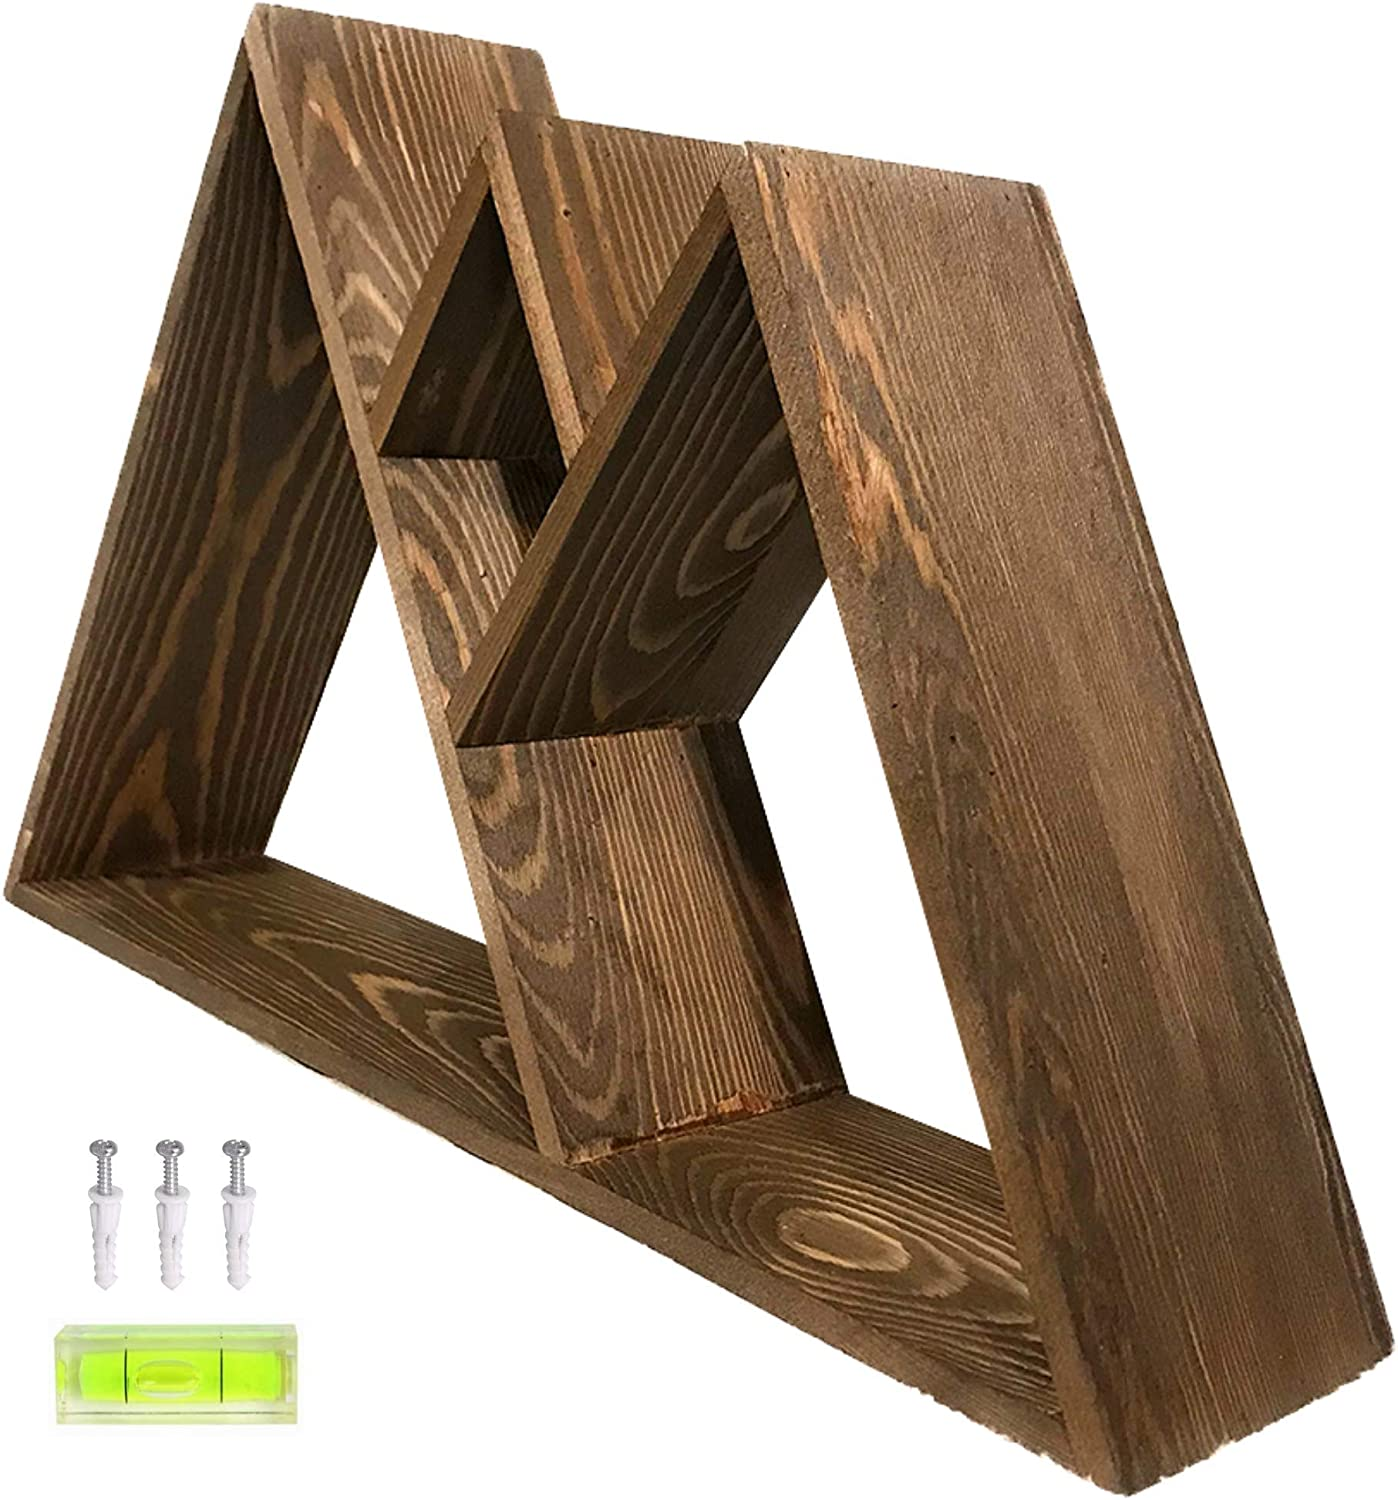 Nomnu Wooden Mountain Shelf - Floating Mountain Decor for Wall or Table Top - with Hanging Hardware - Rustic Wood Triangle Shelves for Home and Plant Display